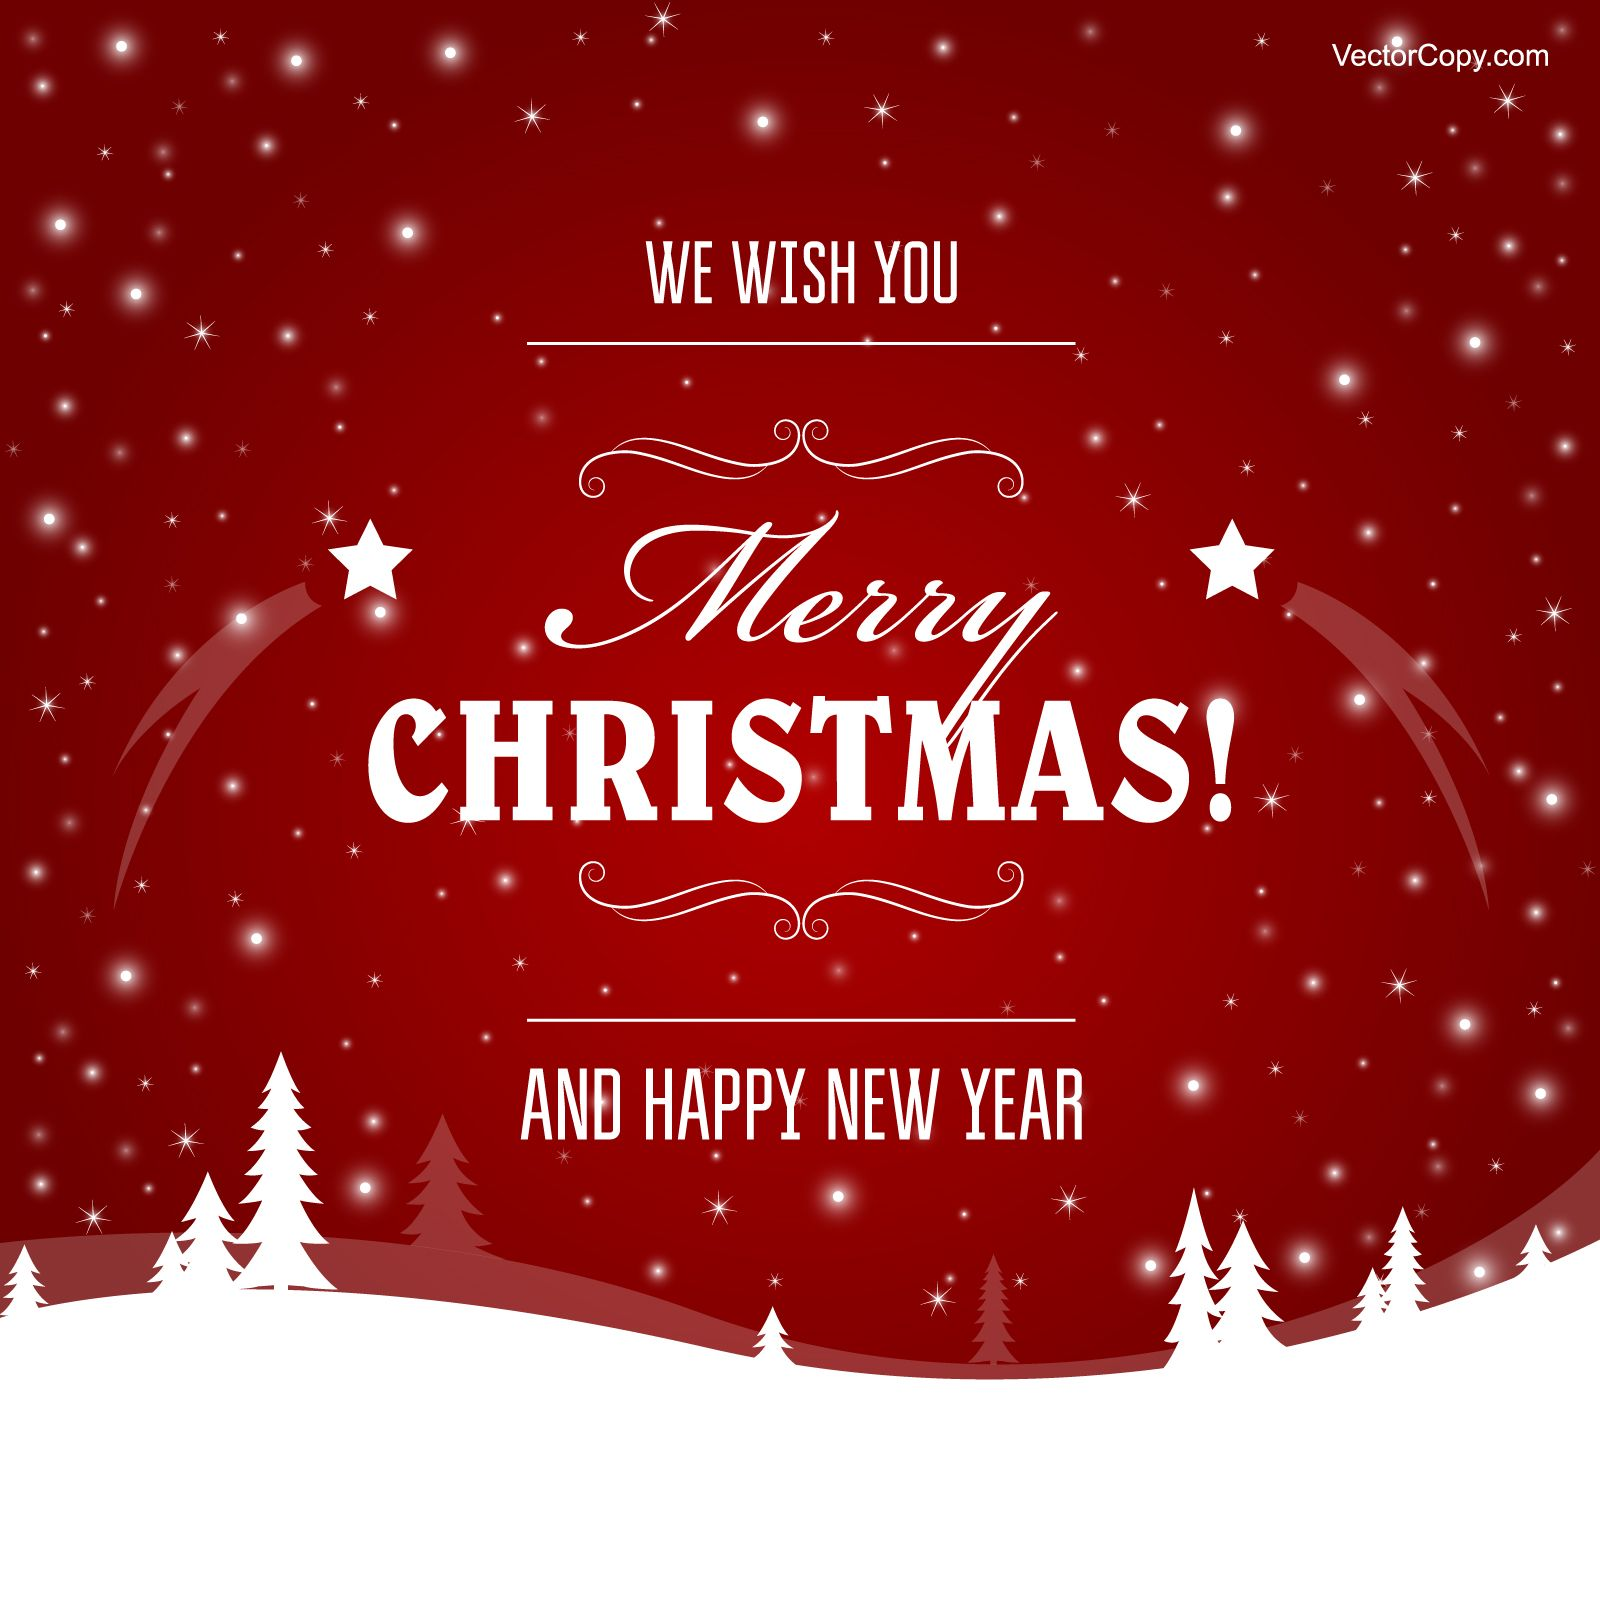 Christmas greeting card on snowing background free vector clipart christmas greeting card on snowing background free vector clipart image 237 vectorcopy m4hsunfo